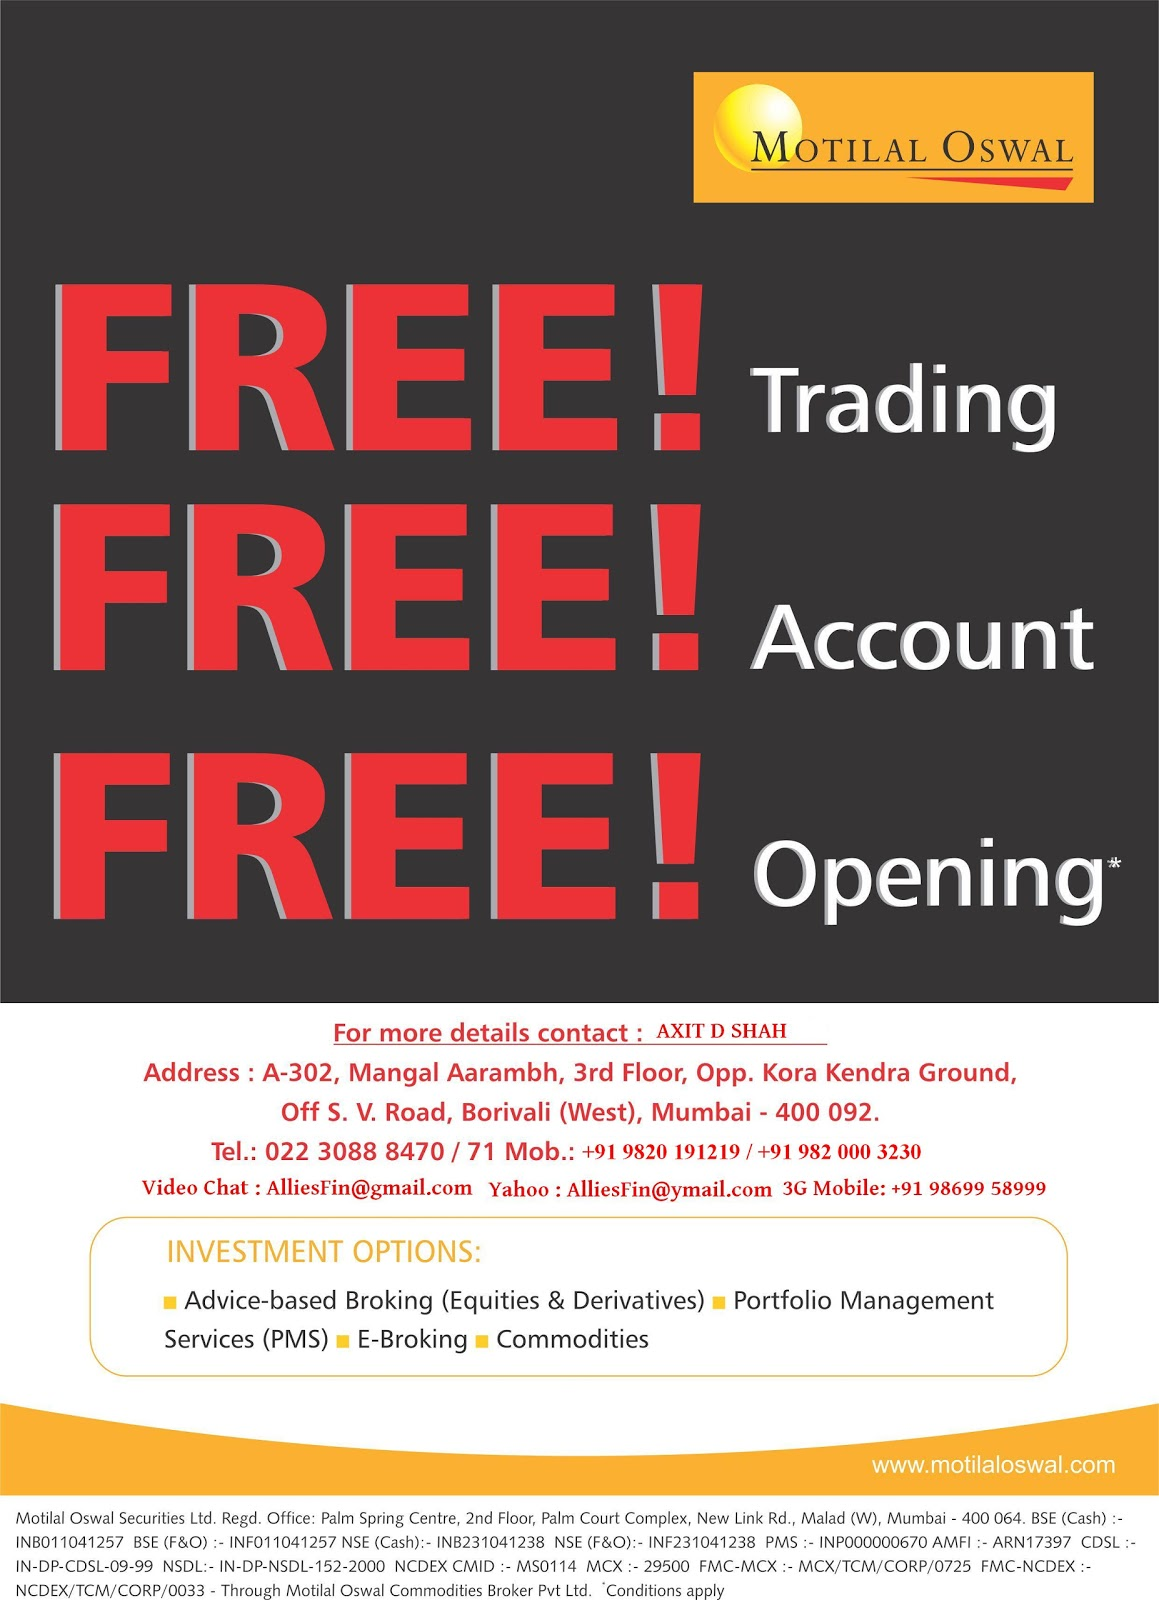 Motilal Oswal Demat Account - Find Opening Process